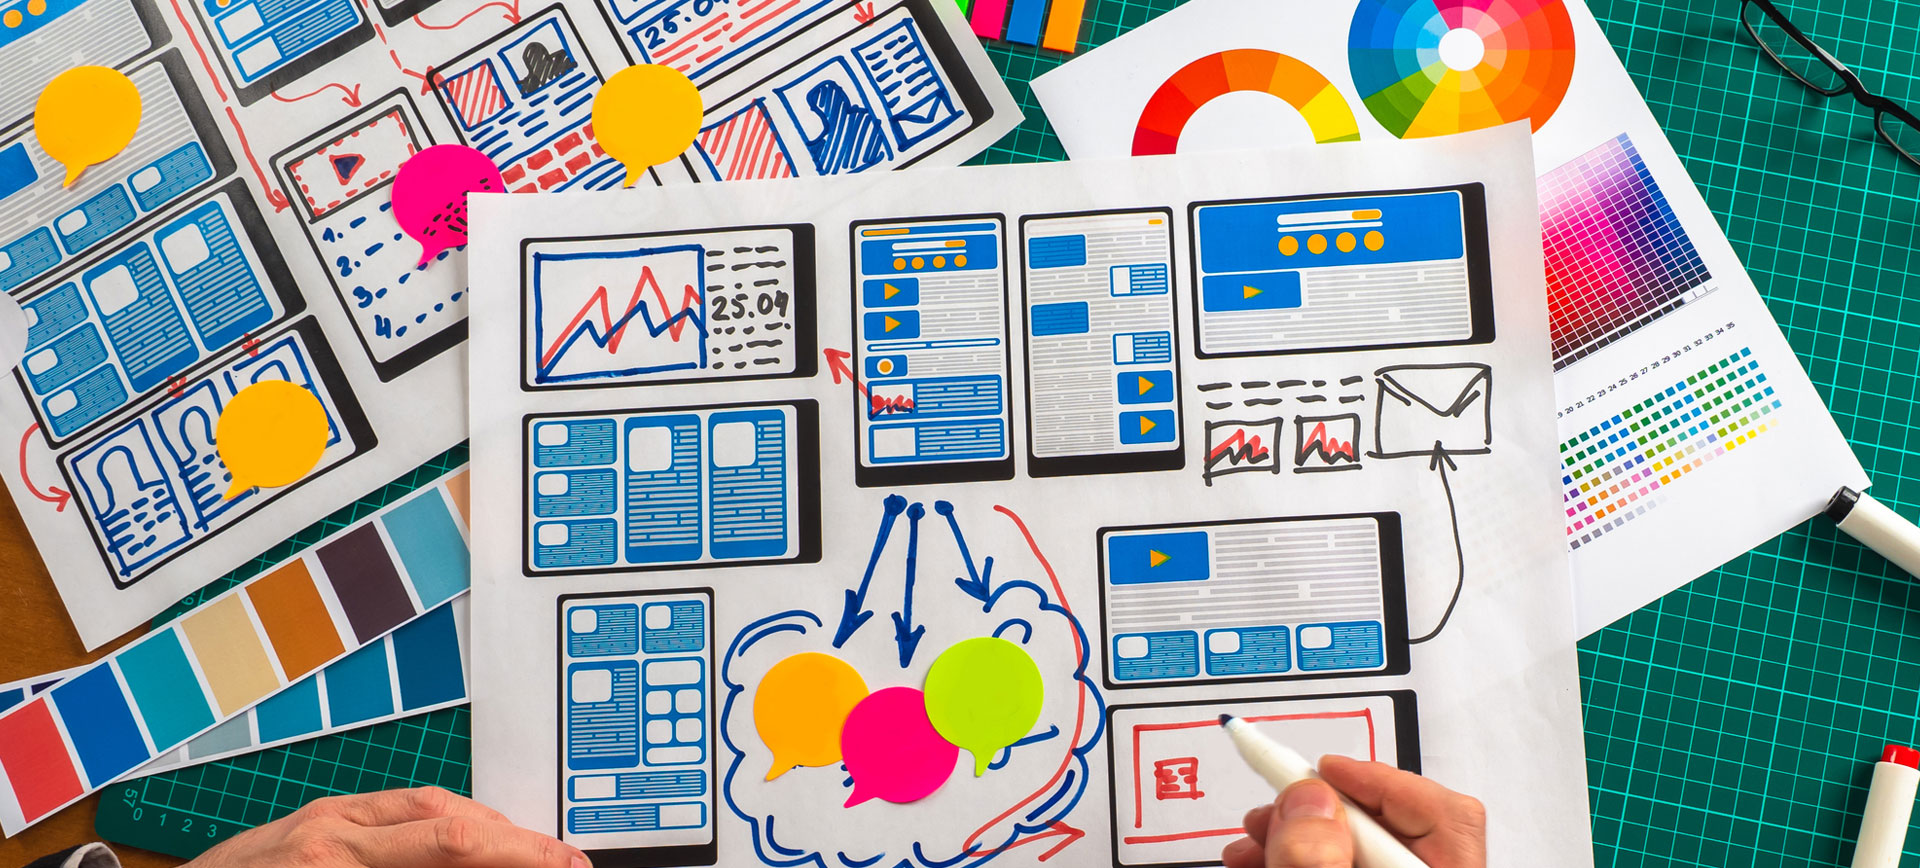 8 Colors That Are Proven to Boost Sales. Most Eye-Catching Website Colors.